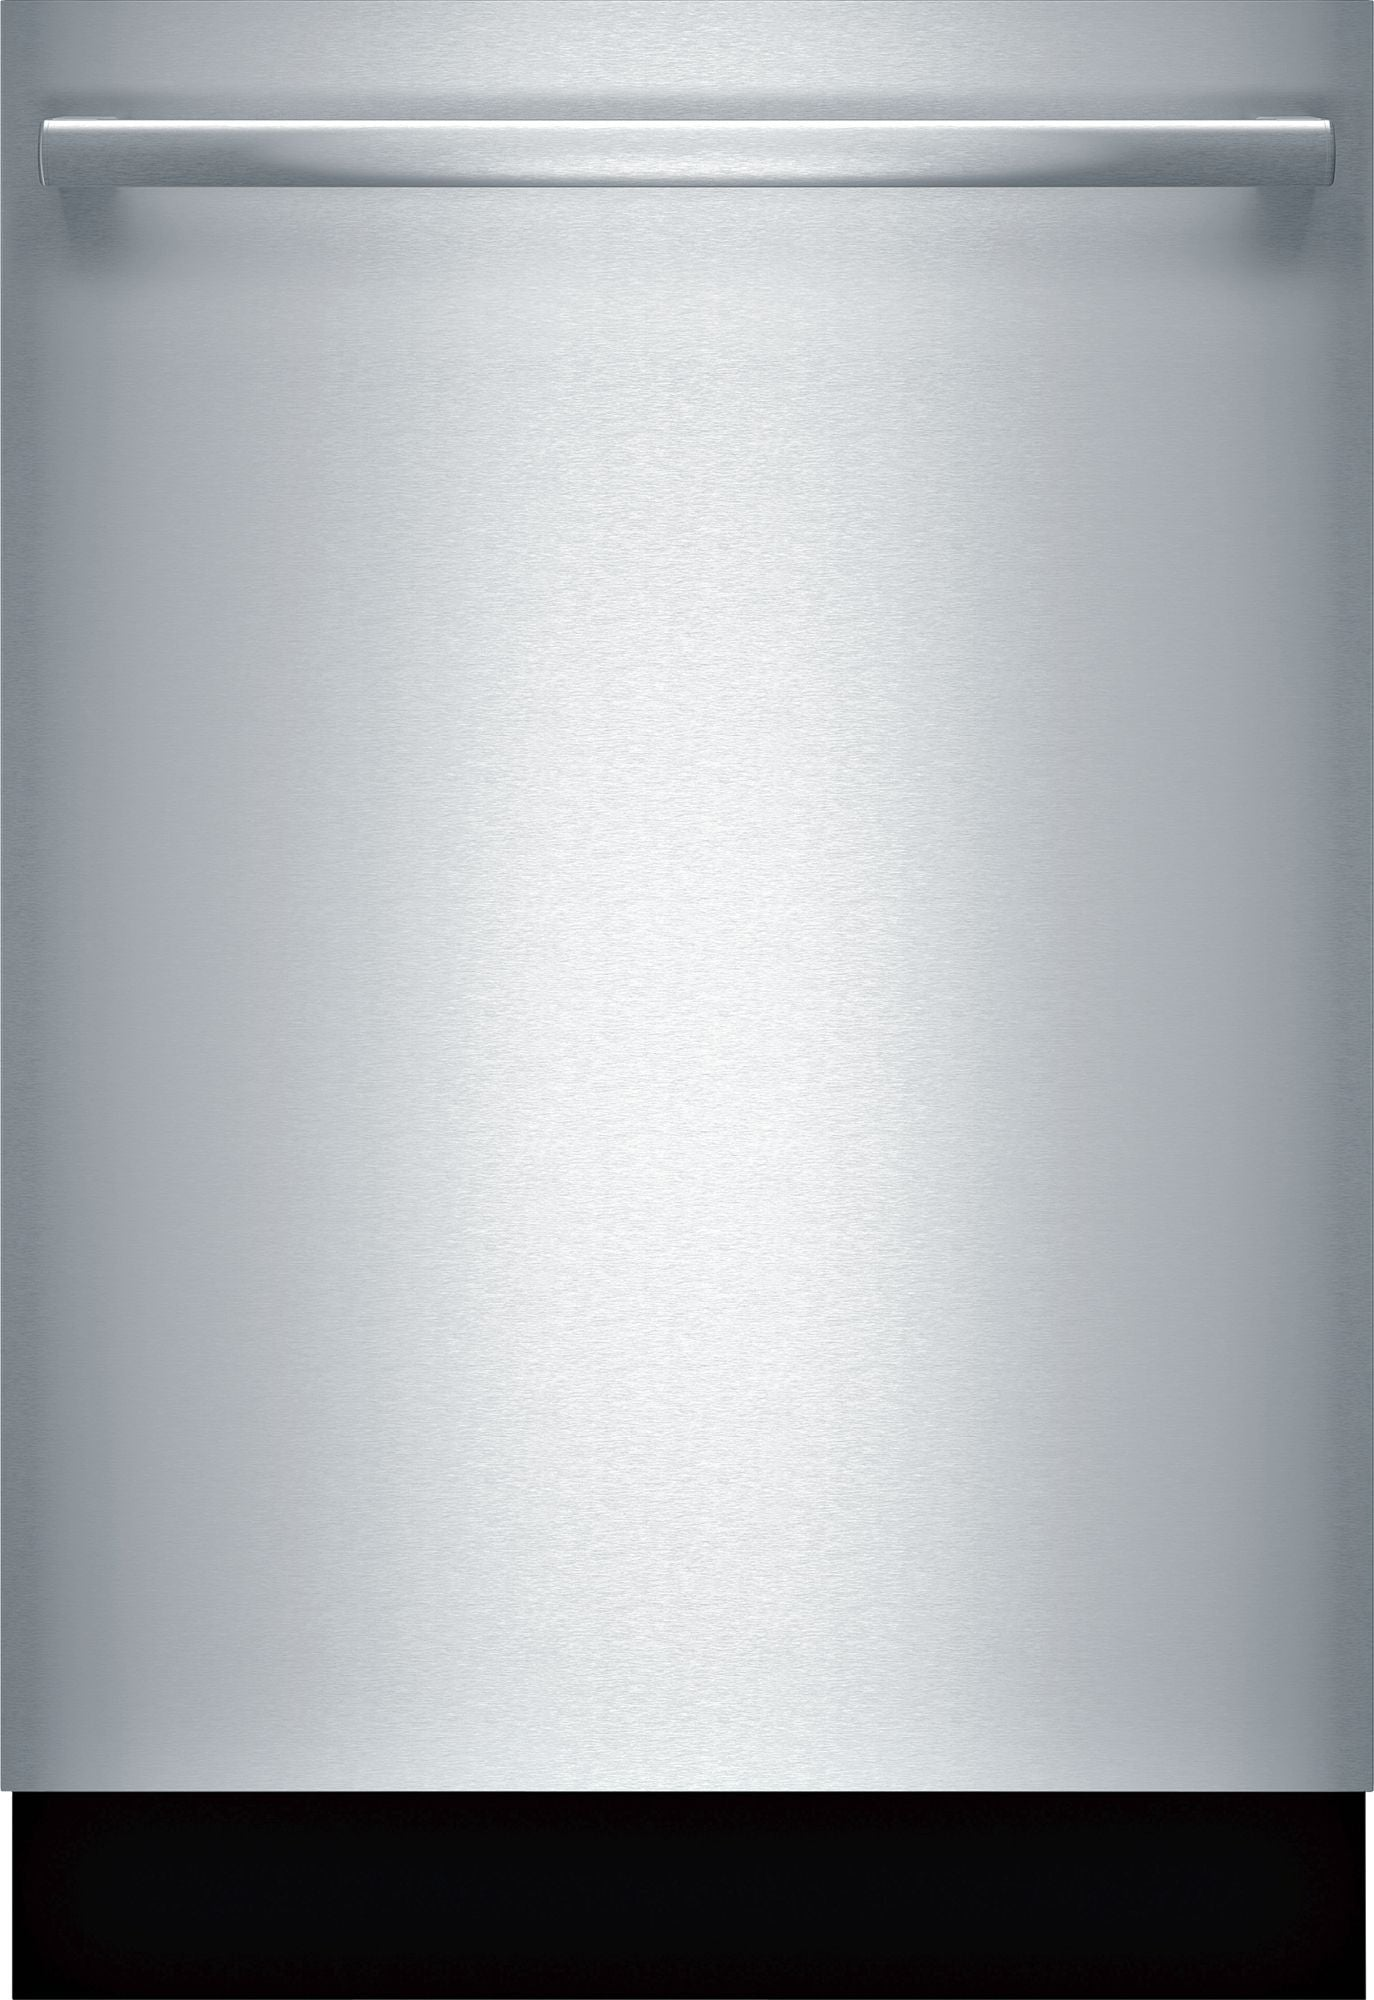 Bosch 500 24in Built-In Dishwasher (Stainless Steel)